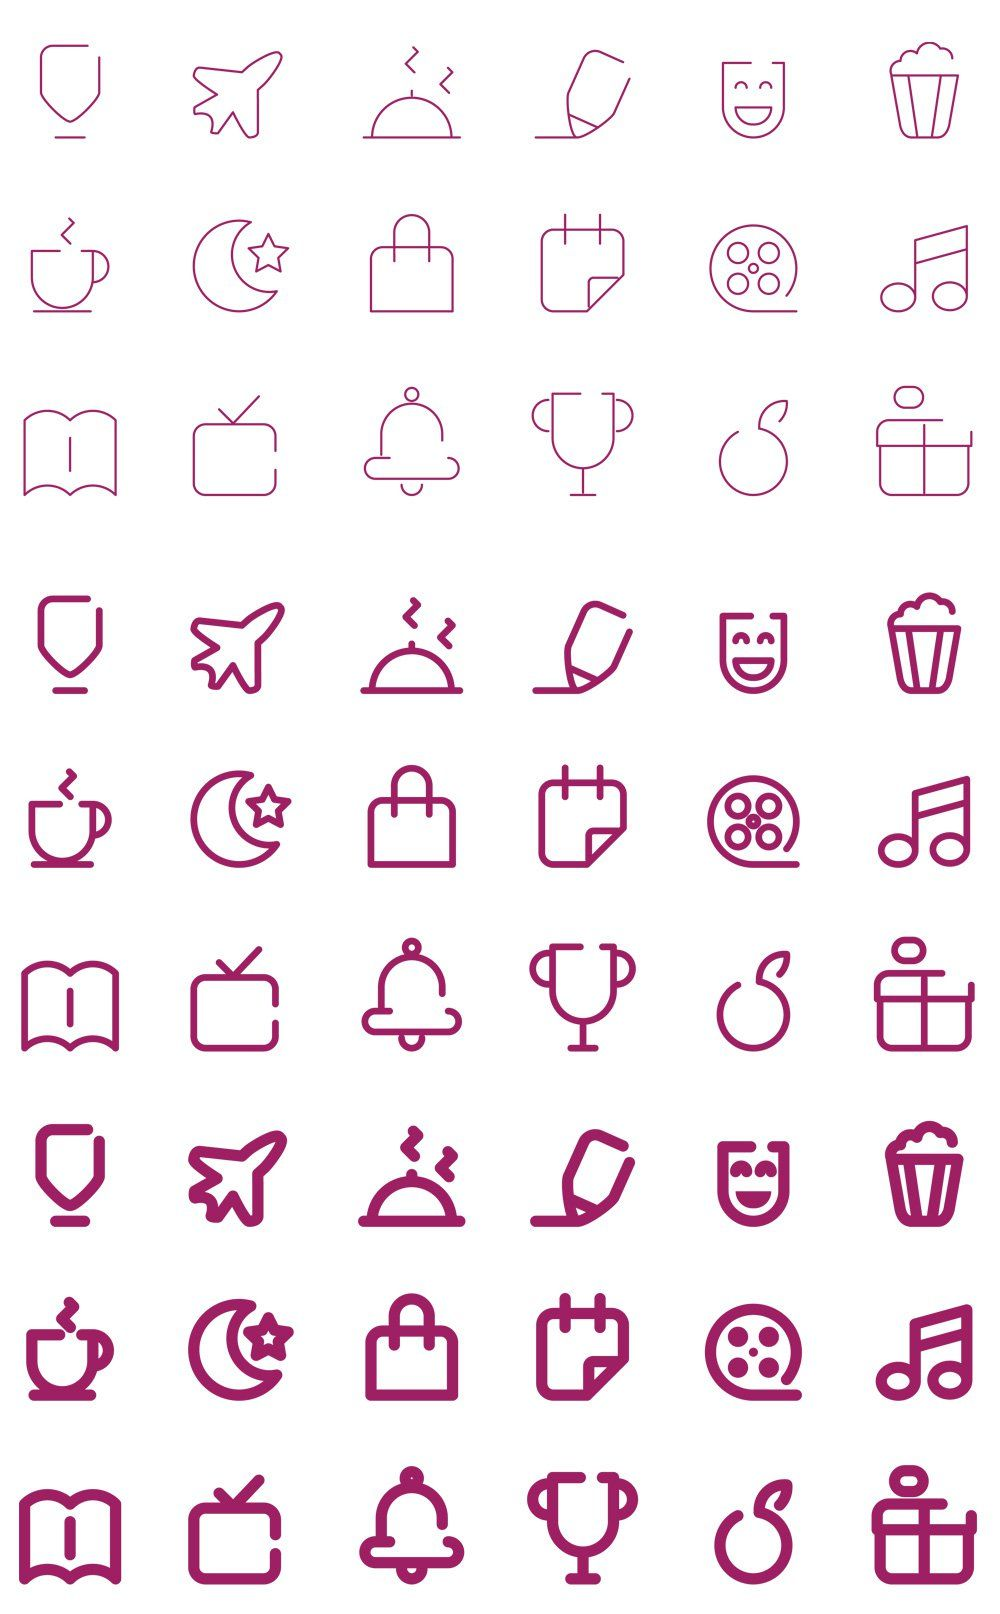 Free Vector Icons Free Icons Interface design, User